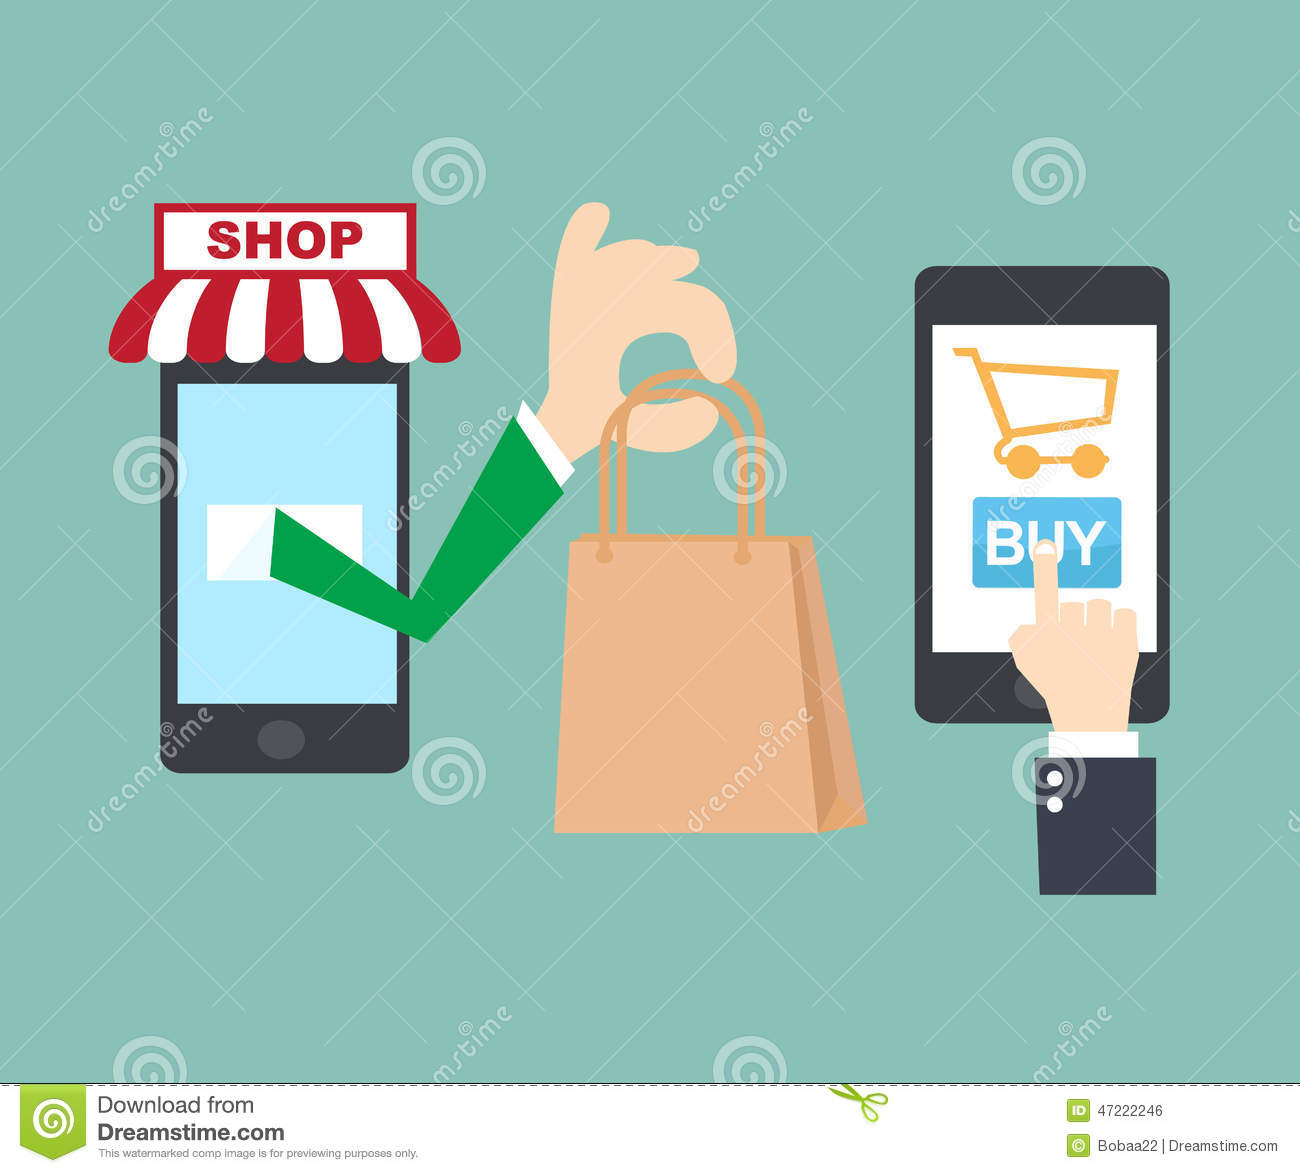 mobile-shopping-online-cartoon-business-idea-concept-47222246.jpg